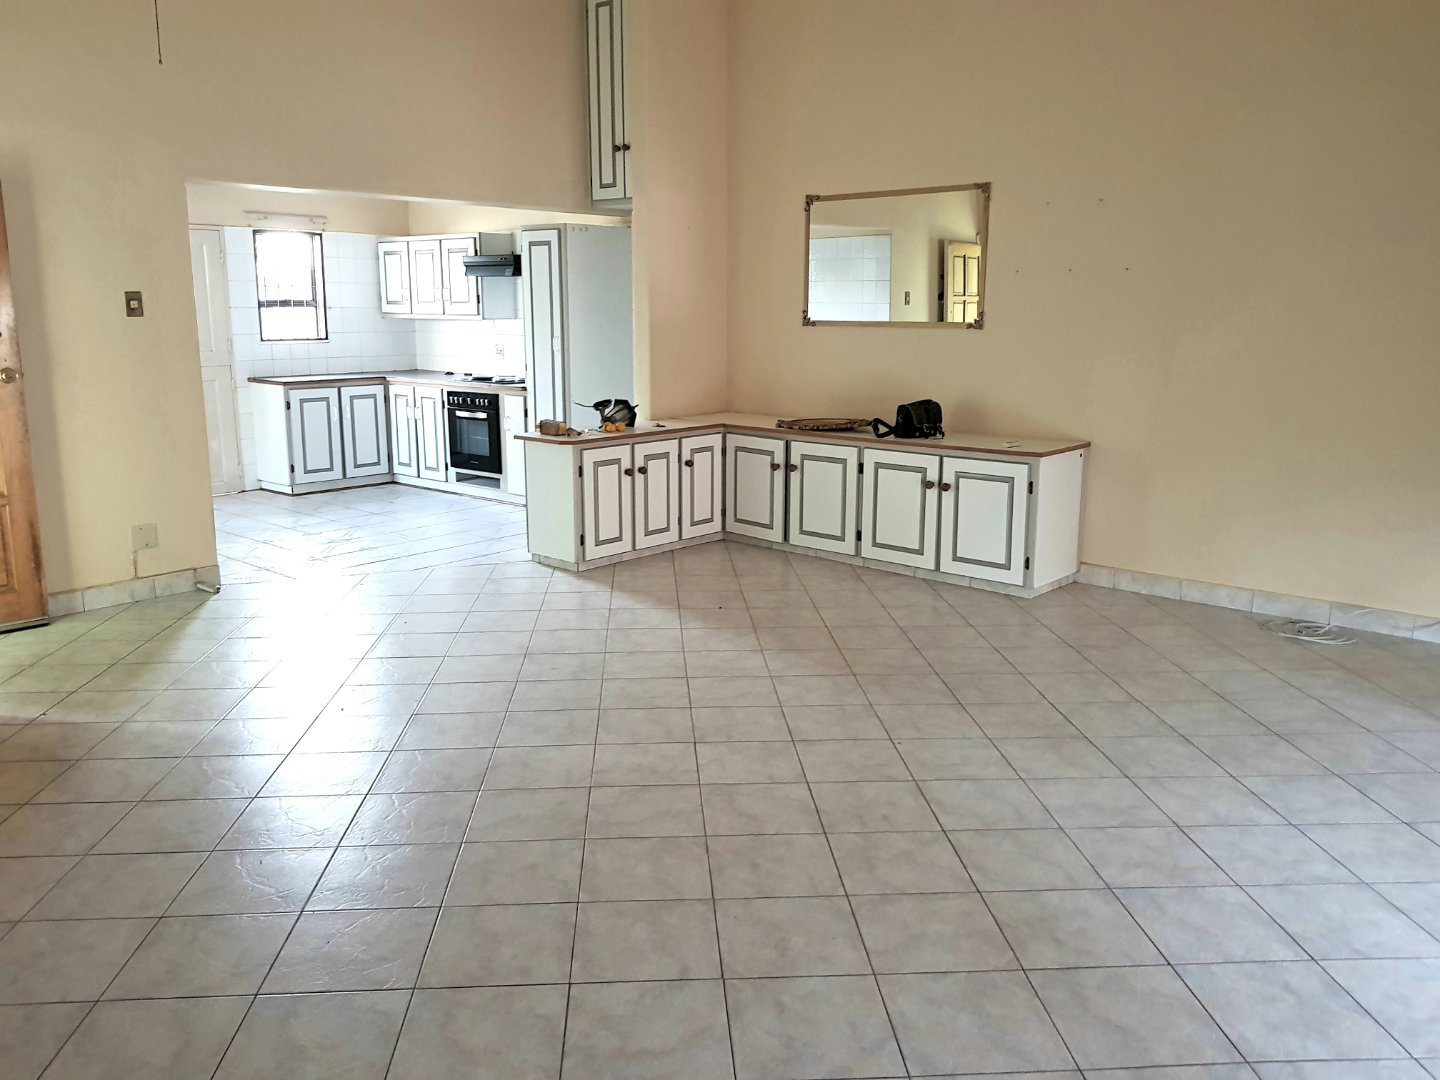 Property and Houses for sale in Northern Cape - Page 5, House, 3 Bedrooms - ZAR 1,270,000